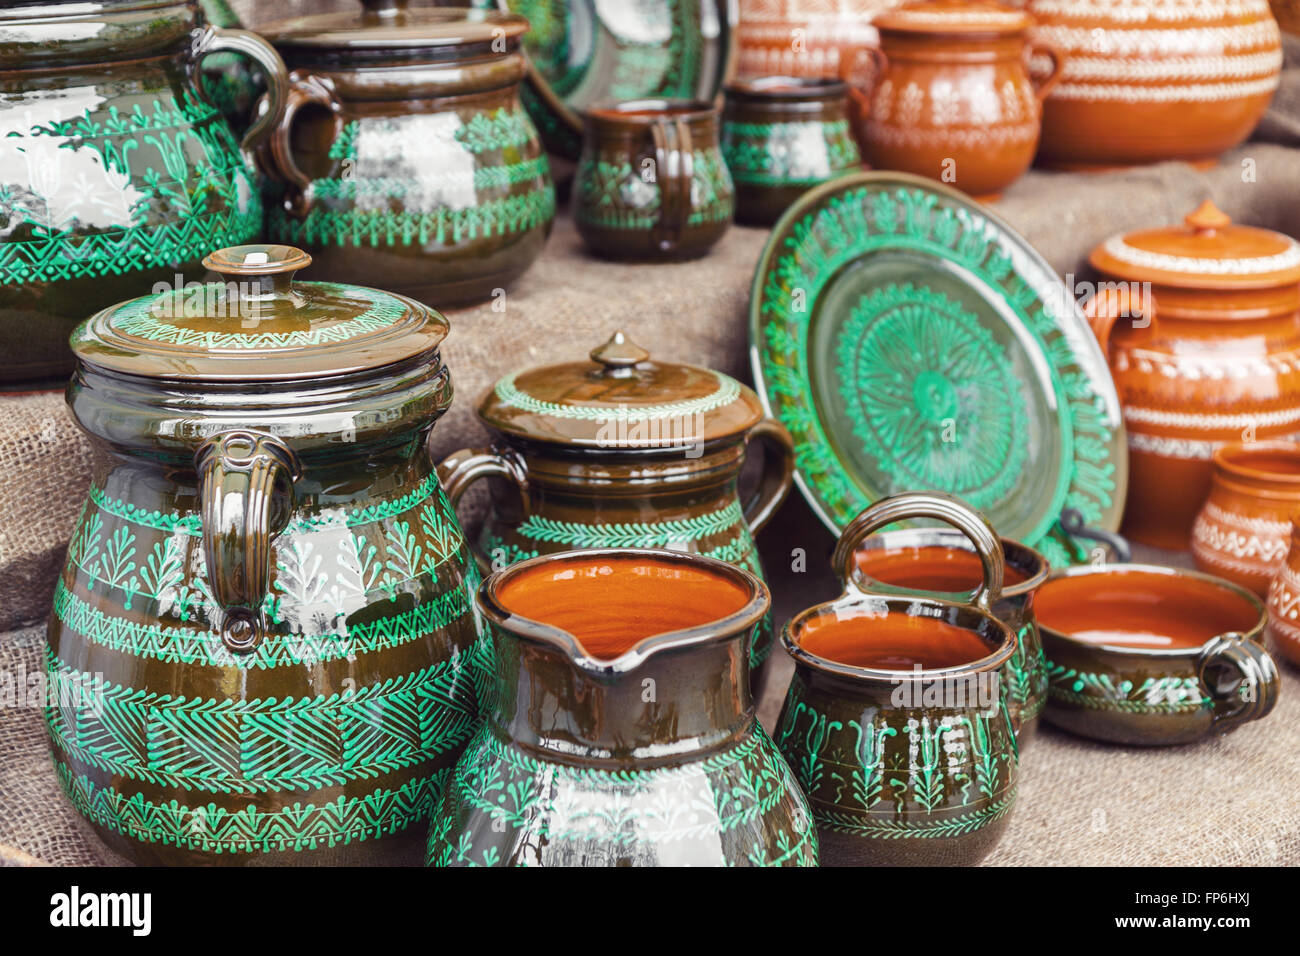 Group of traditional handmade pottery for sale at the market - Stock Image